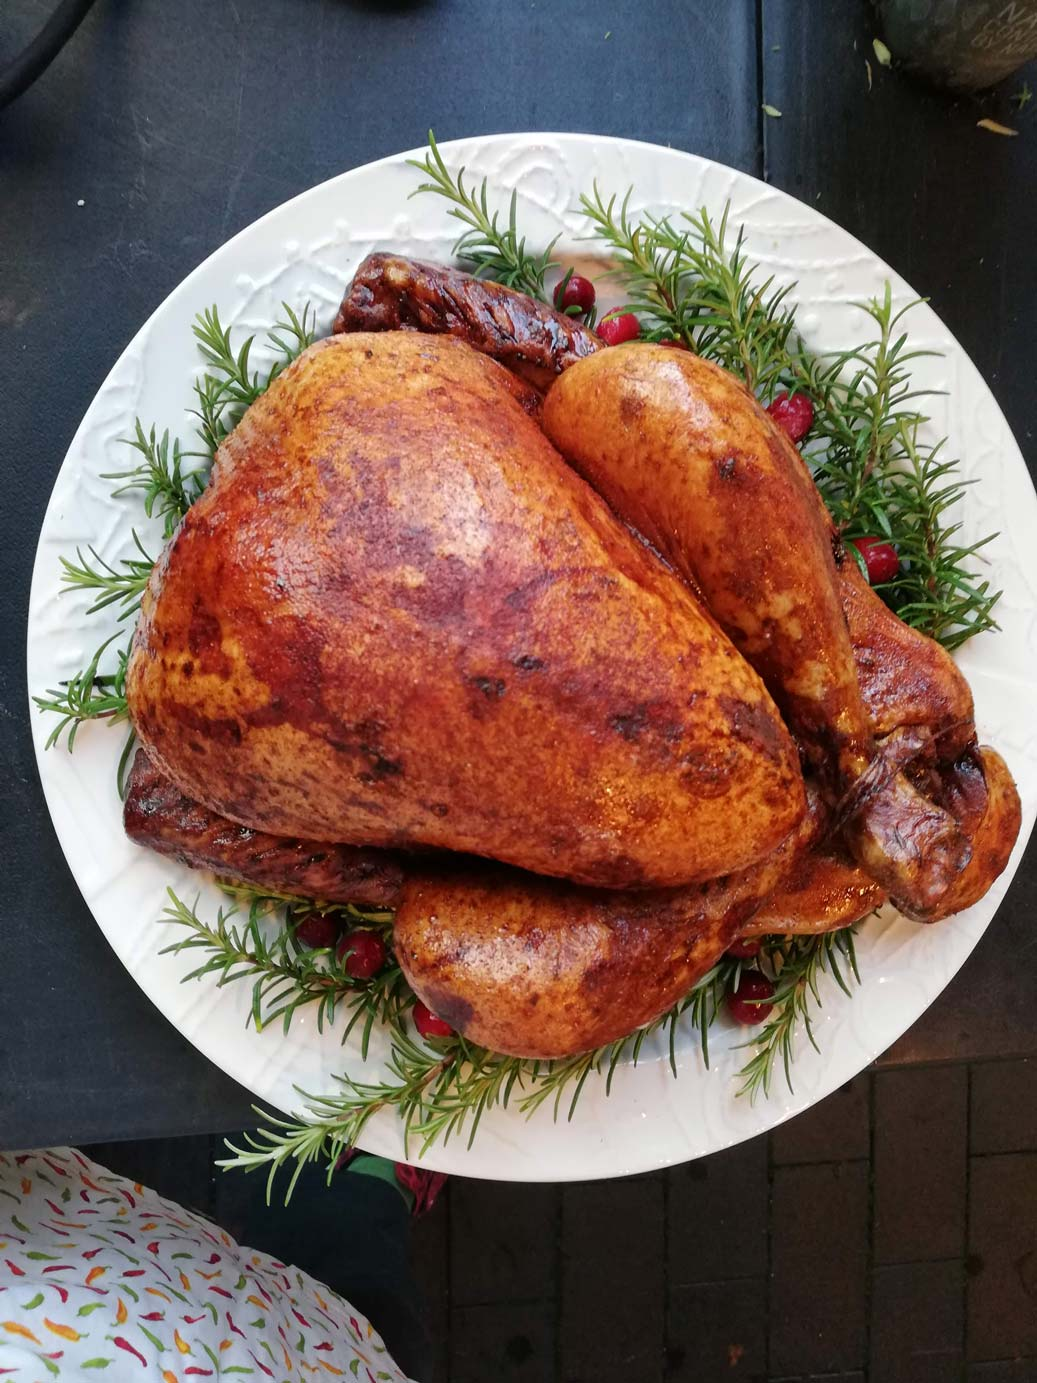 Christmas Turkey Styled On A Plate